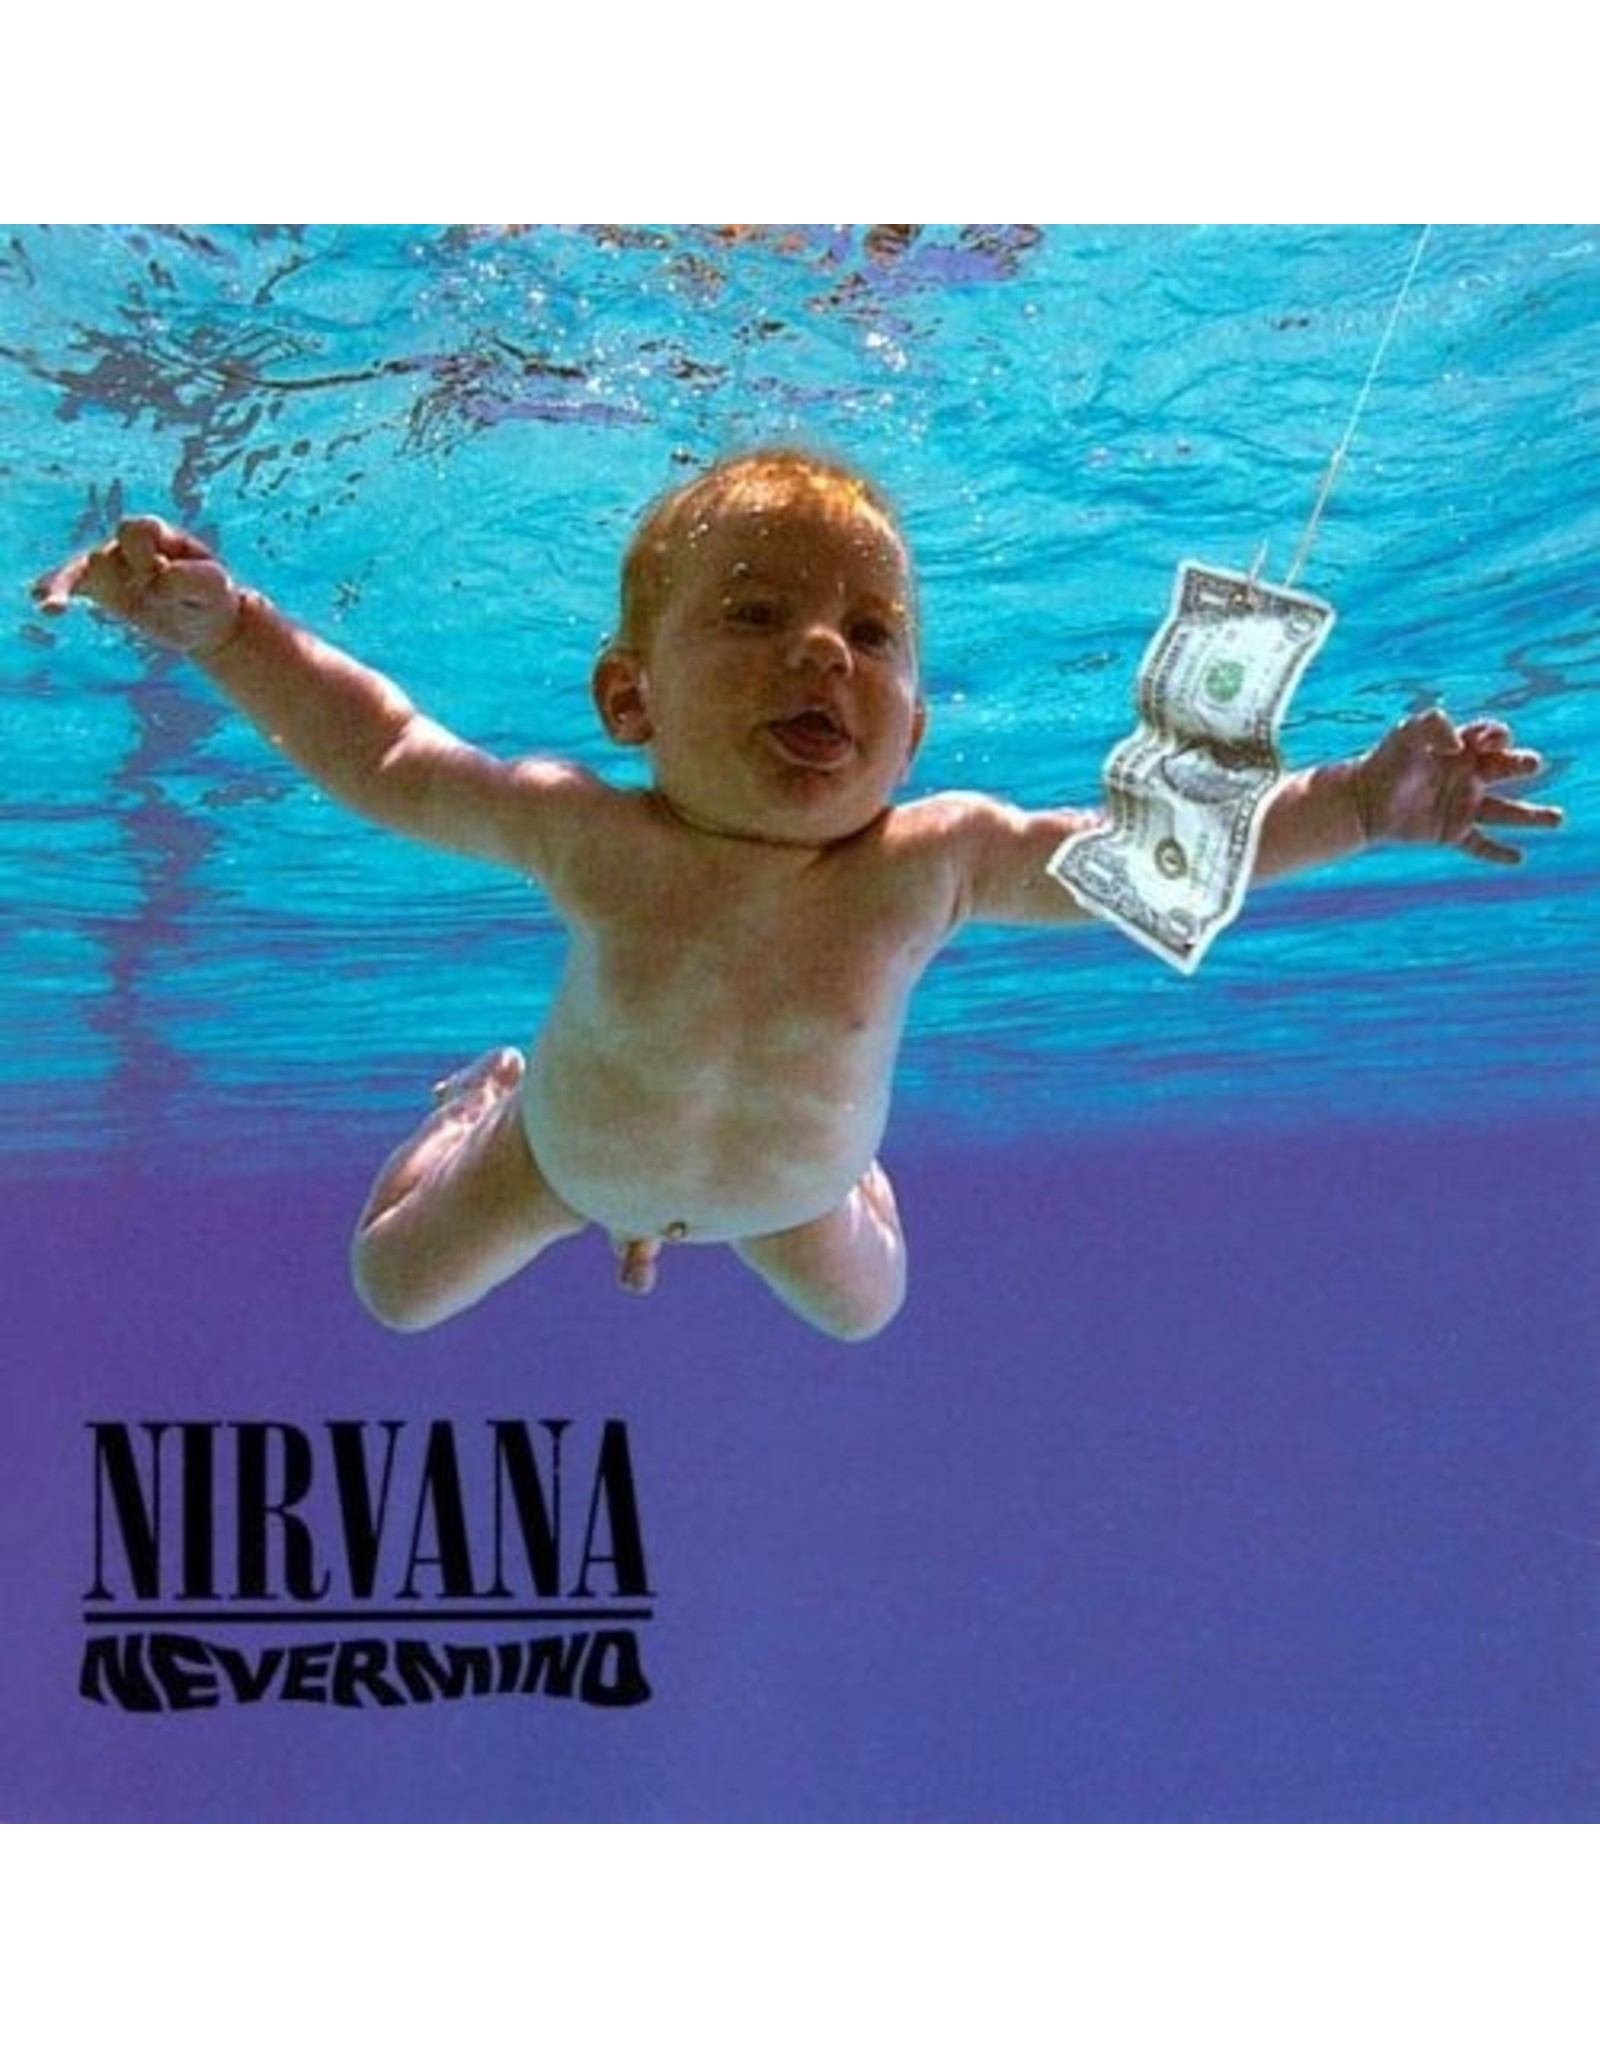 New Vinyl Nirvana - Nevermind LP